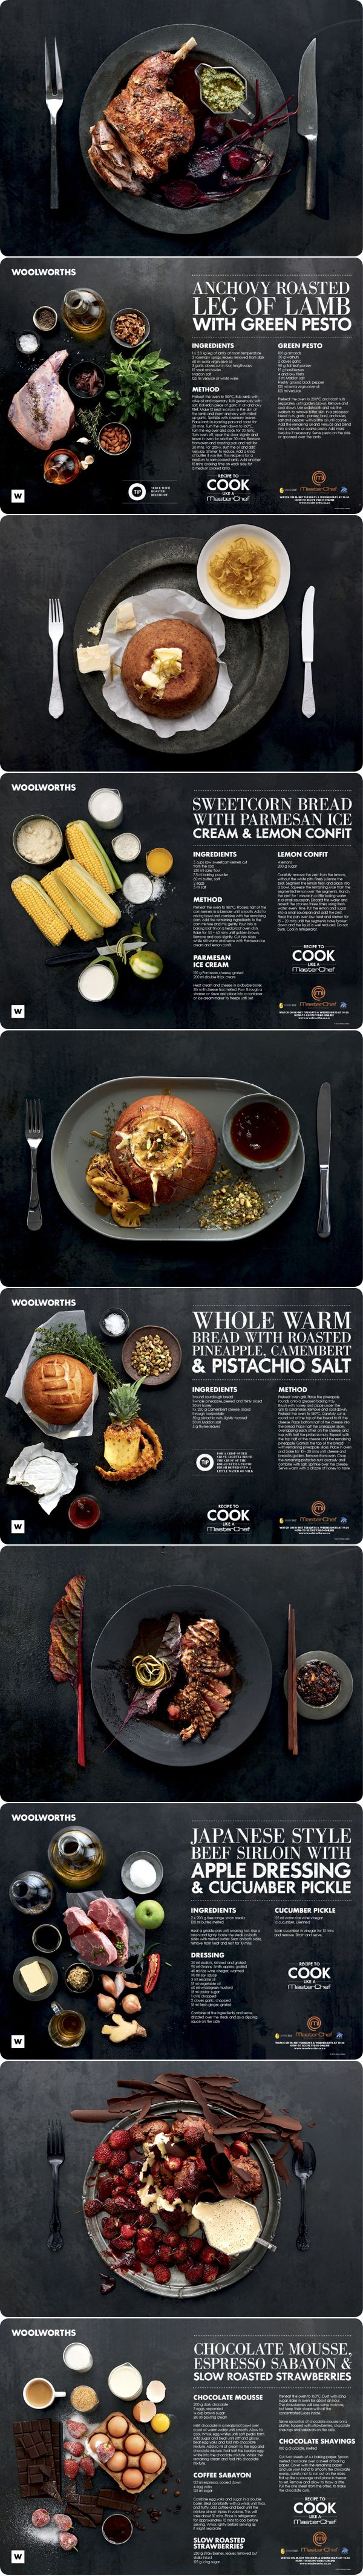 food pages // Laura Wall on behance